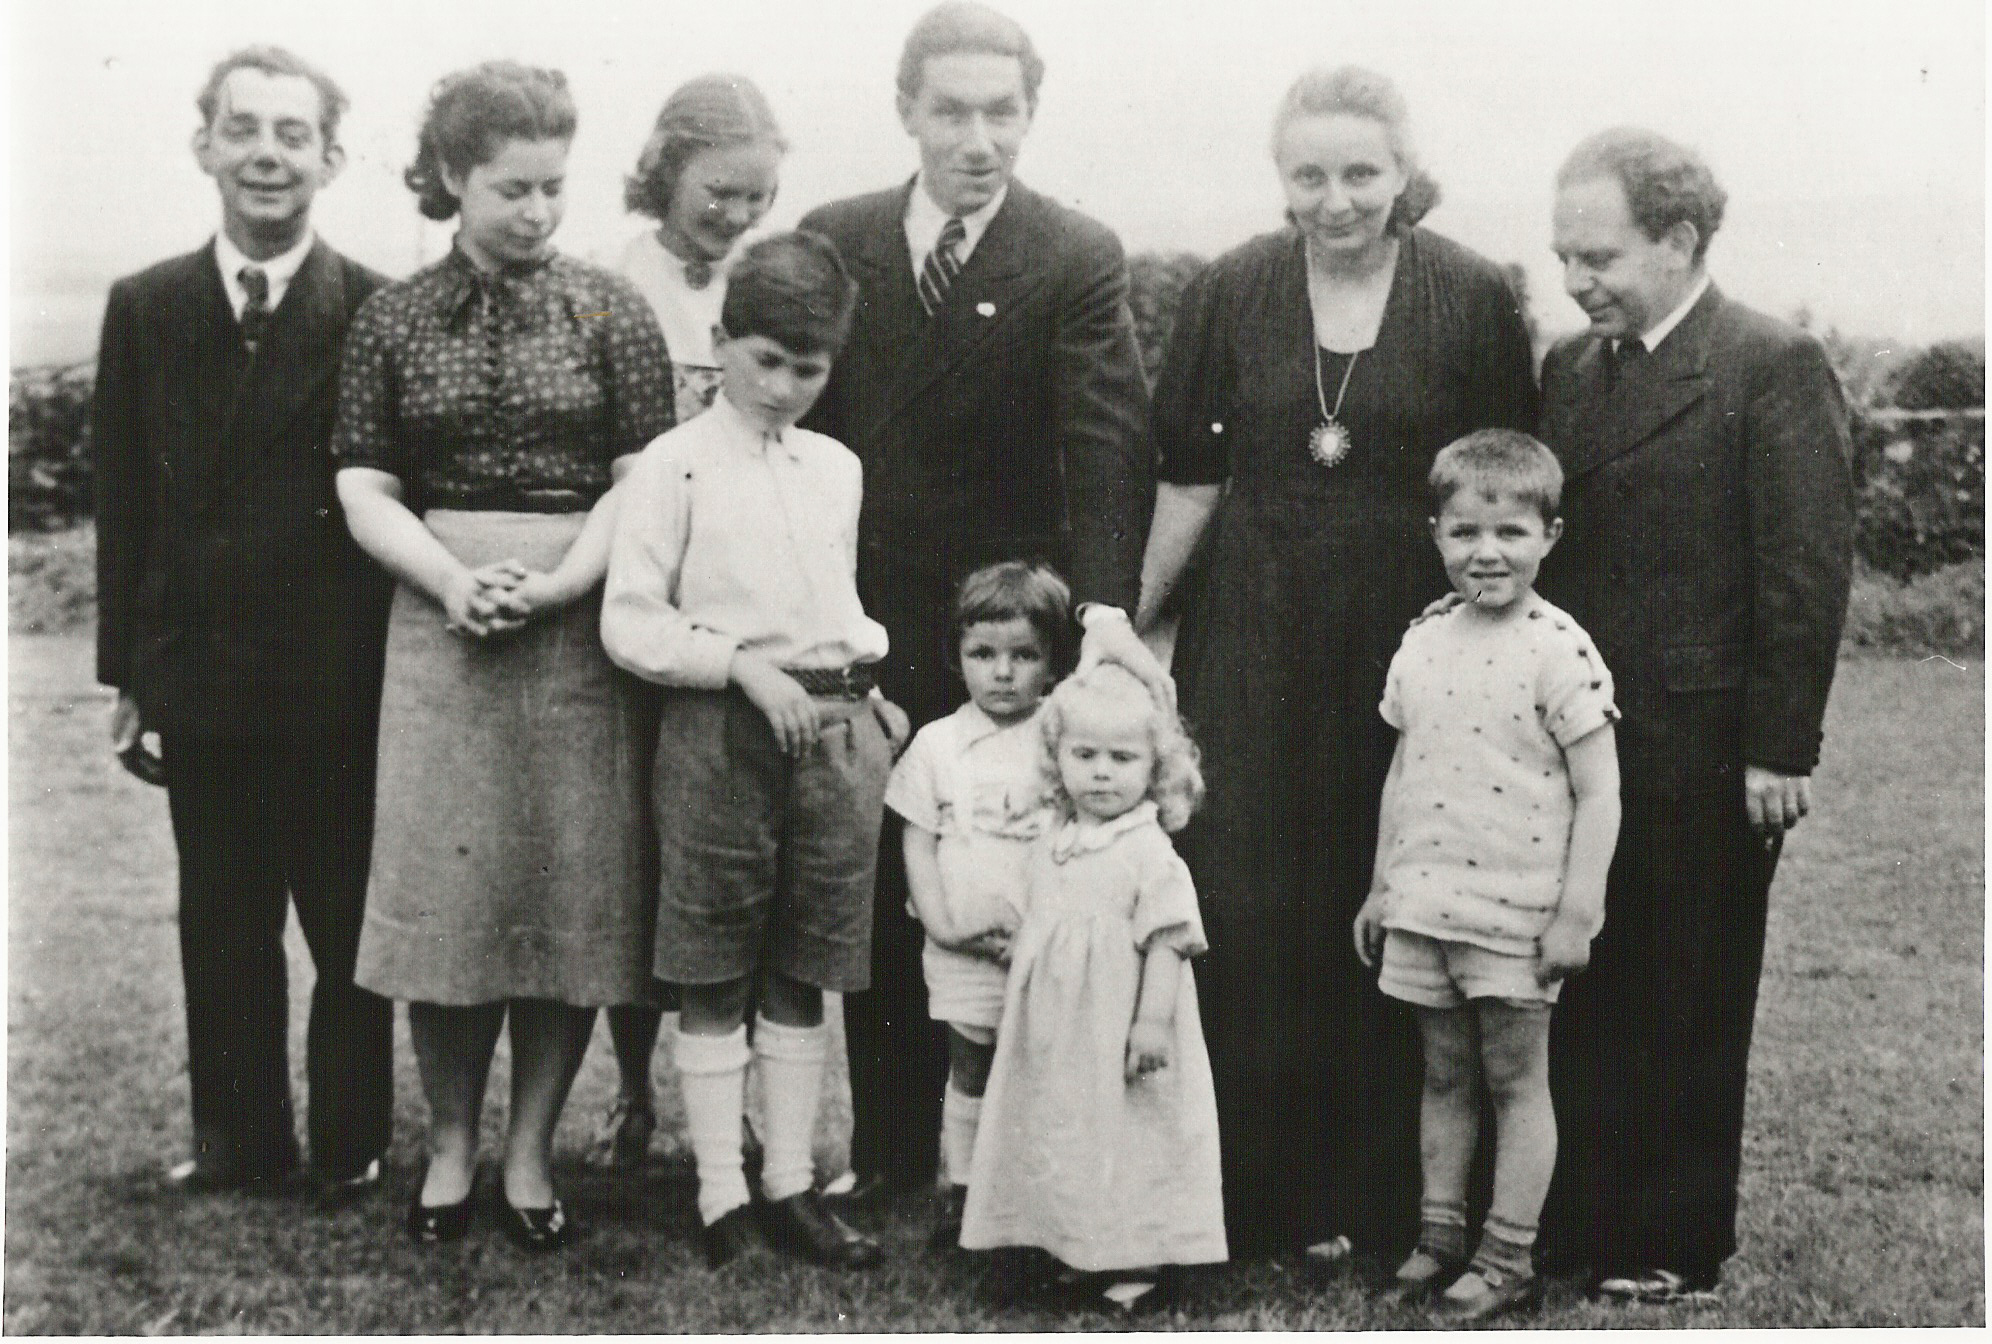 Karl Koenig and early Camphill Founders, children.